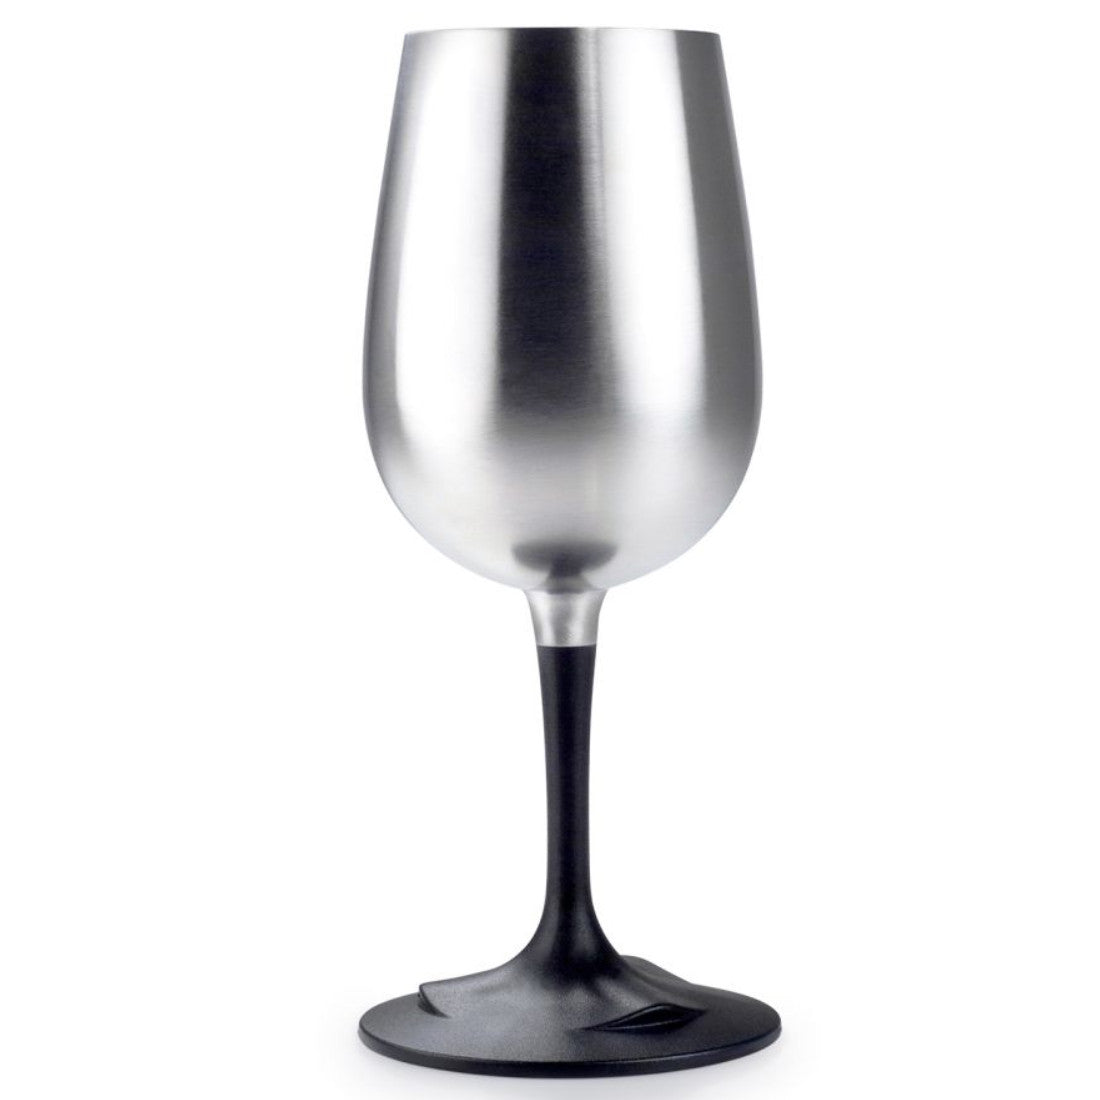 GSI Stainless Nesting Wine Glass x 6 Stood up